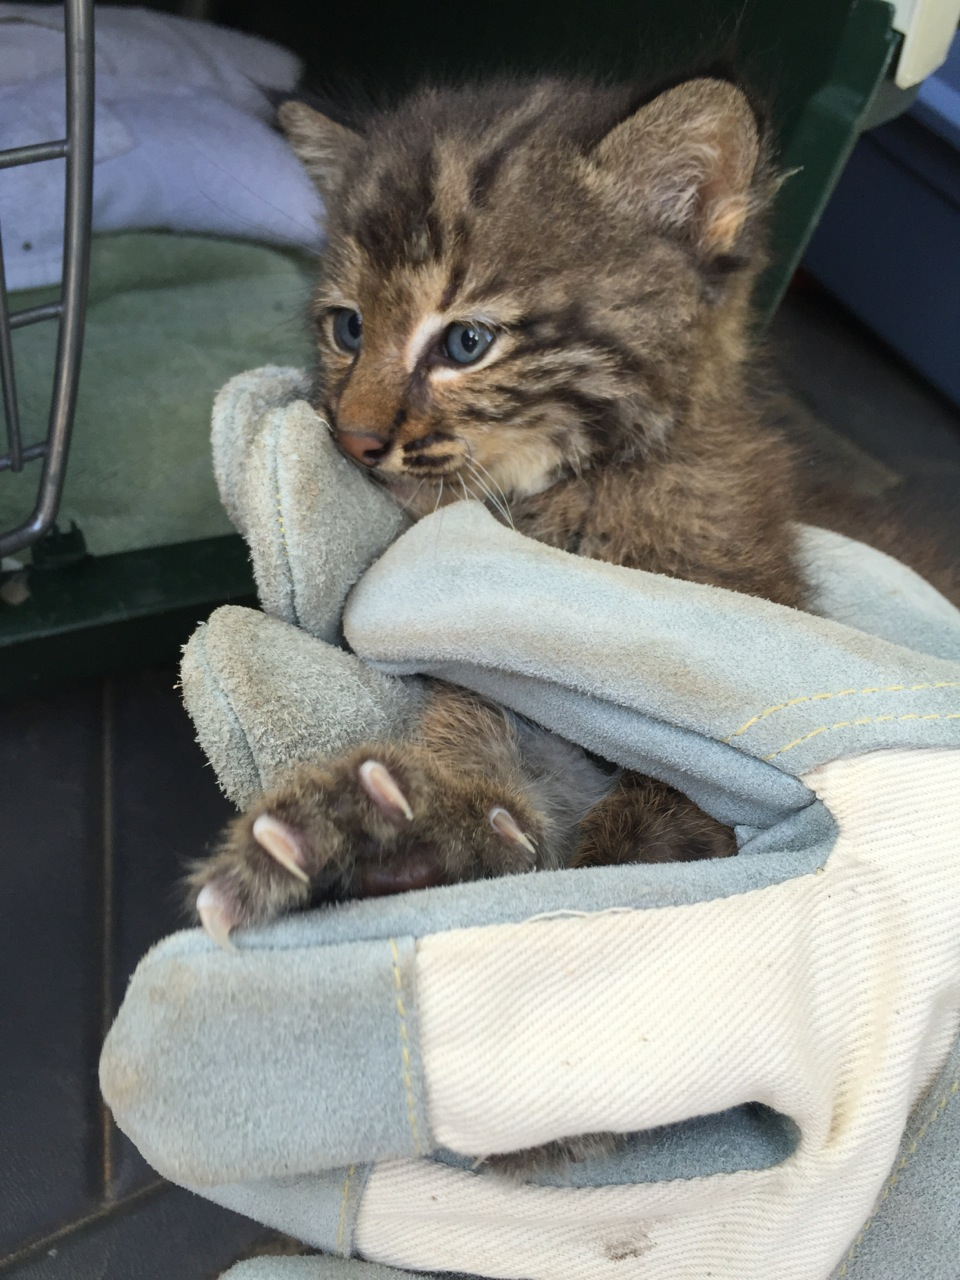 Julie Zickefoose on Blogspot: To Touch a Baby Bobcat